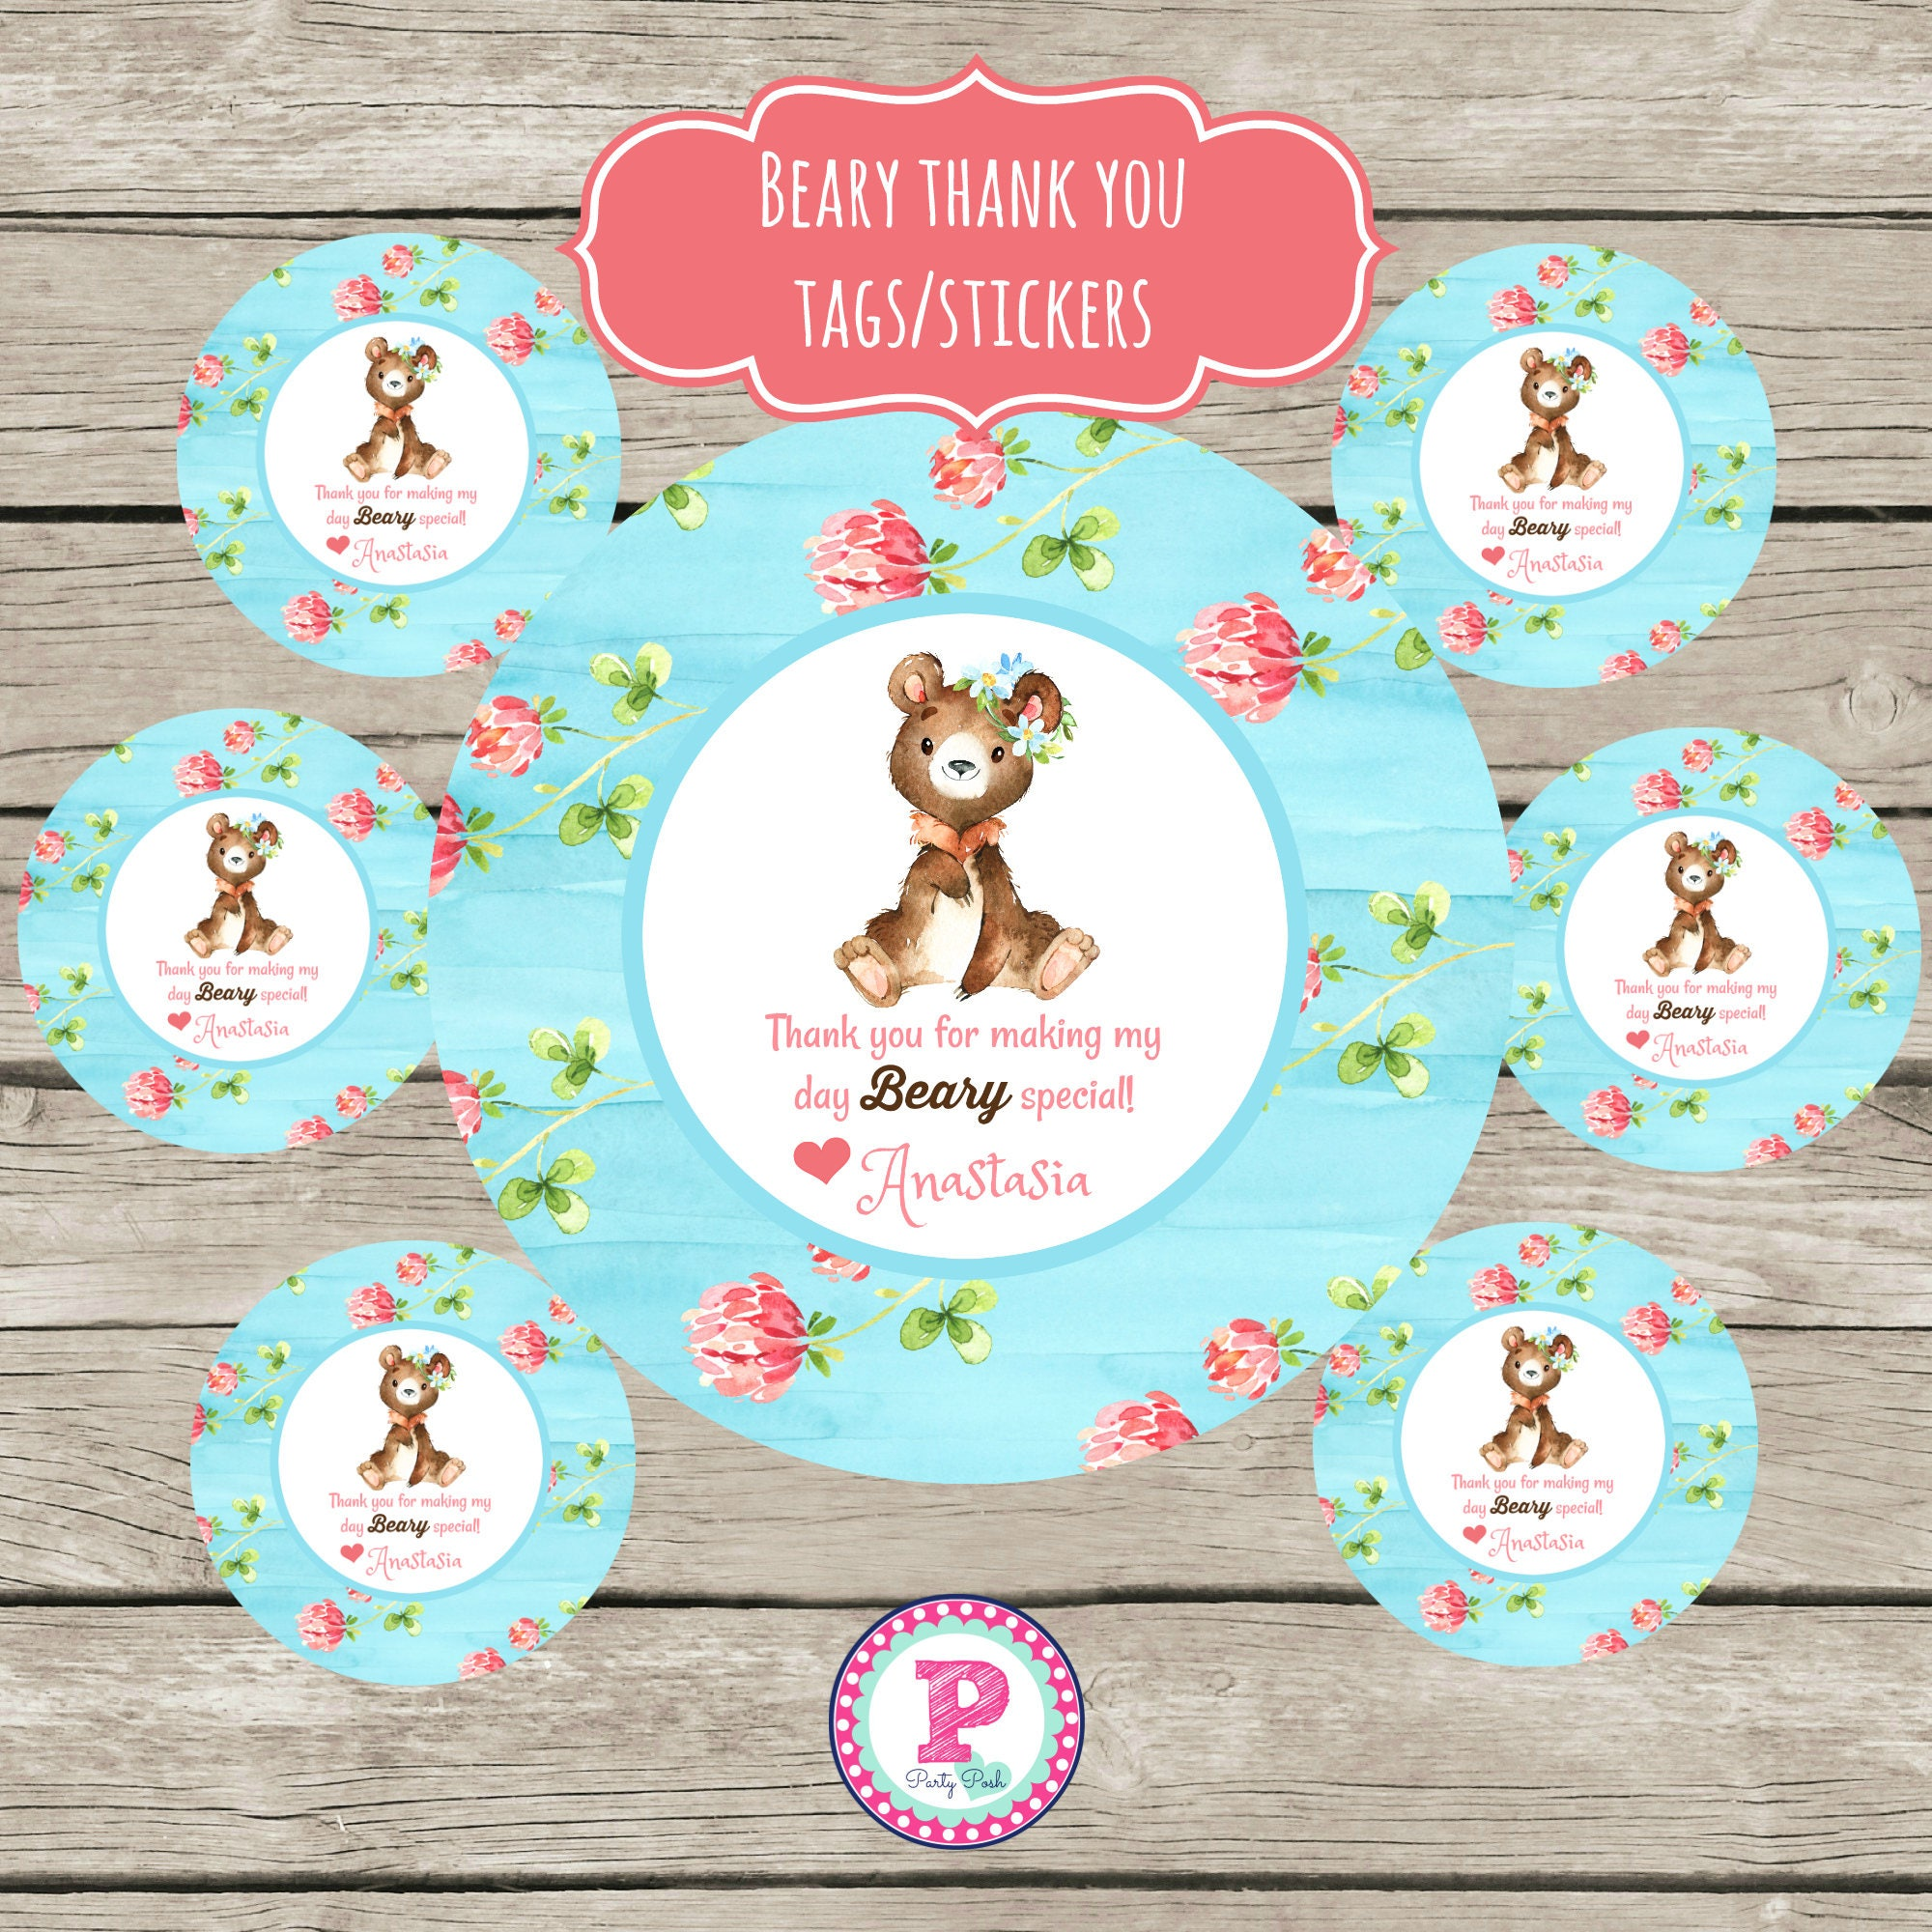 Teddy Bear Picnic Party Circle Stickers Party Labels Favor Tags ...